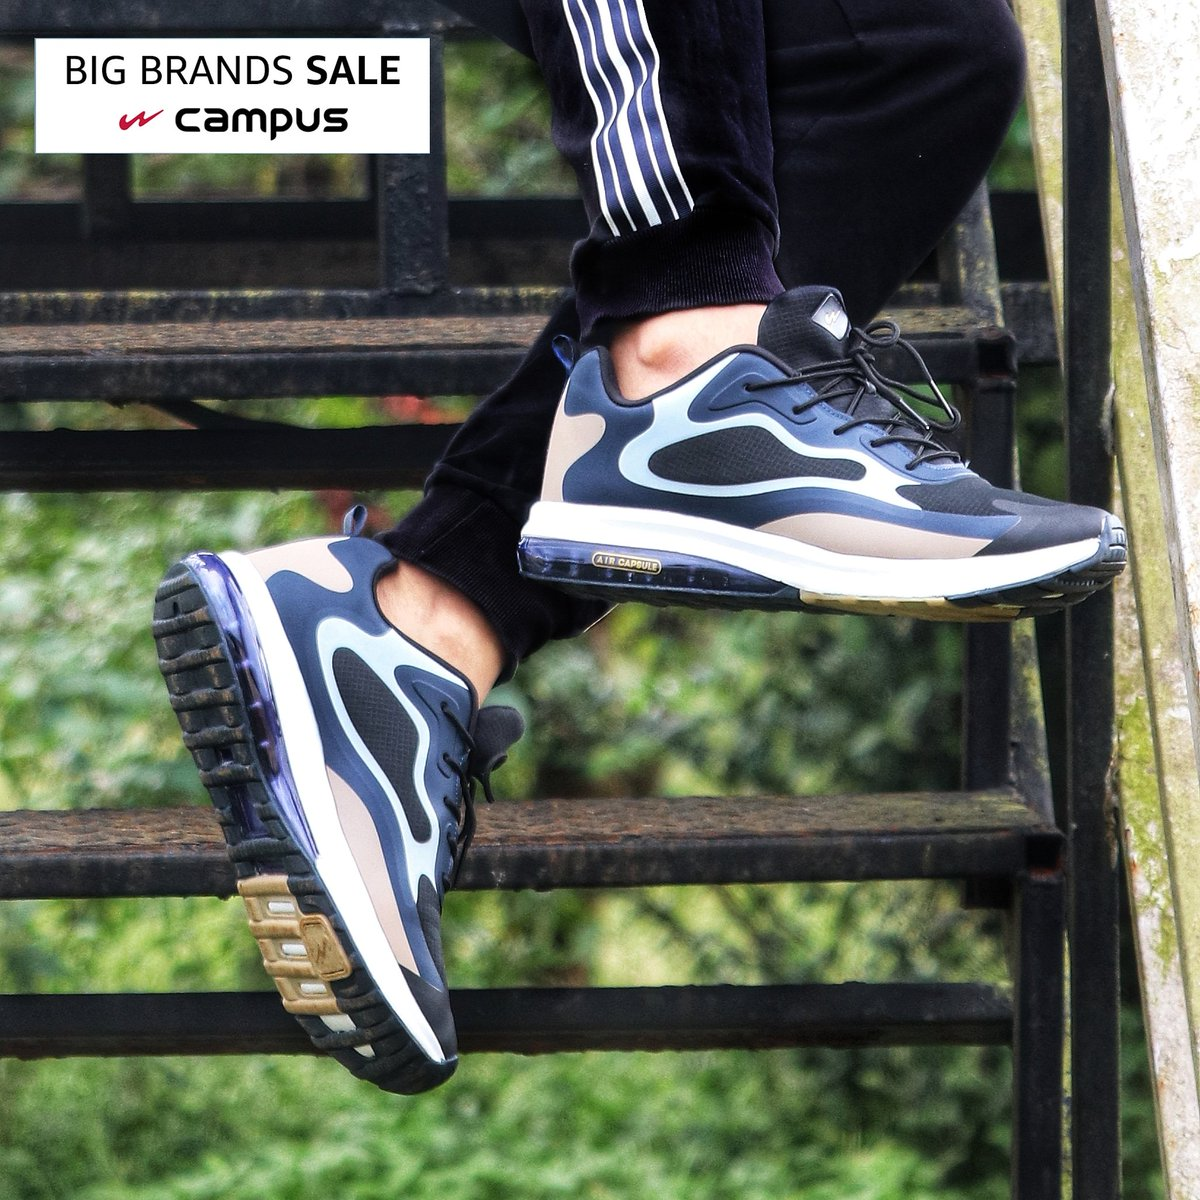 Kick off 2021 with a mega-dose of comfort & style with a pair of future-ready footwear from @campusshoes! Shop & get them at up to 30% off during our #BigBrandSale:  . . #CampusShoes #Footwear #shoes #sneakers #Style #AmazonFashion #HarPalFashionable